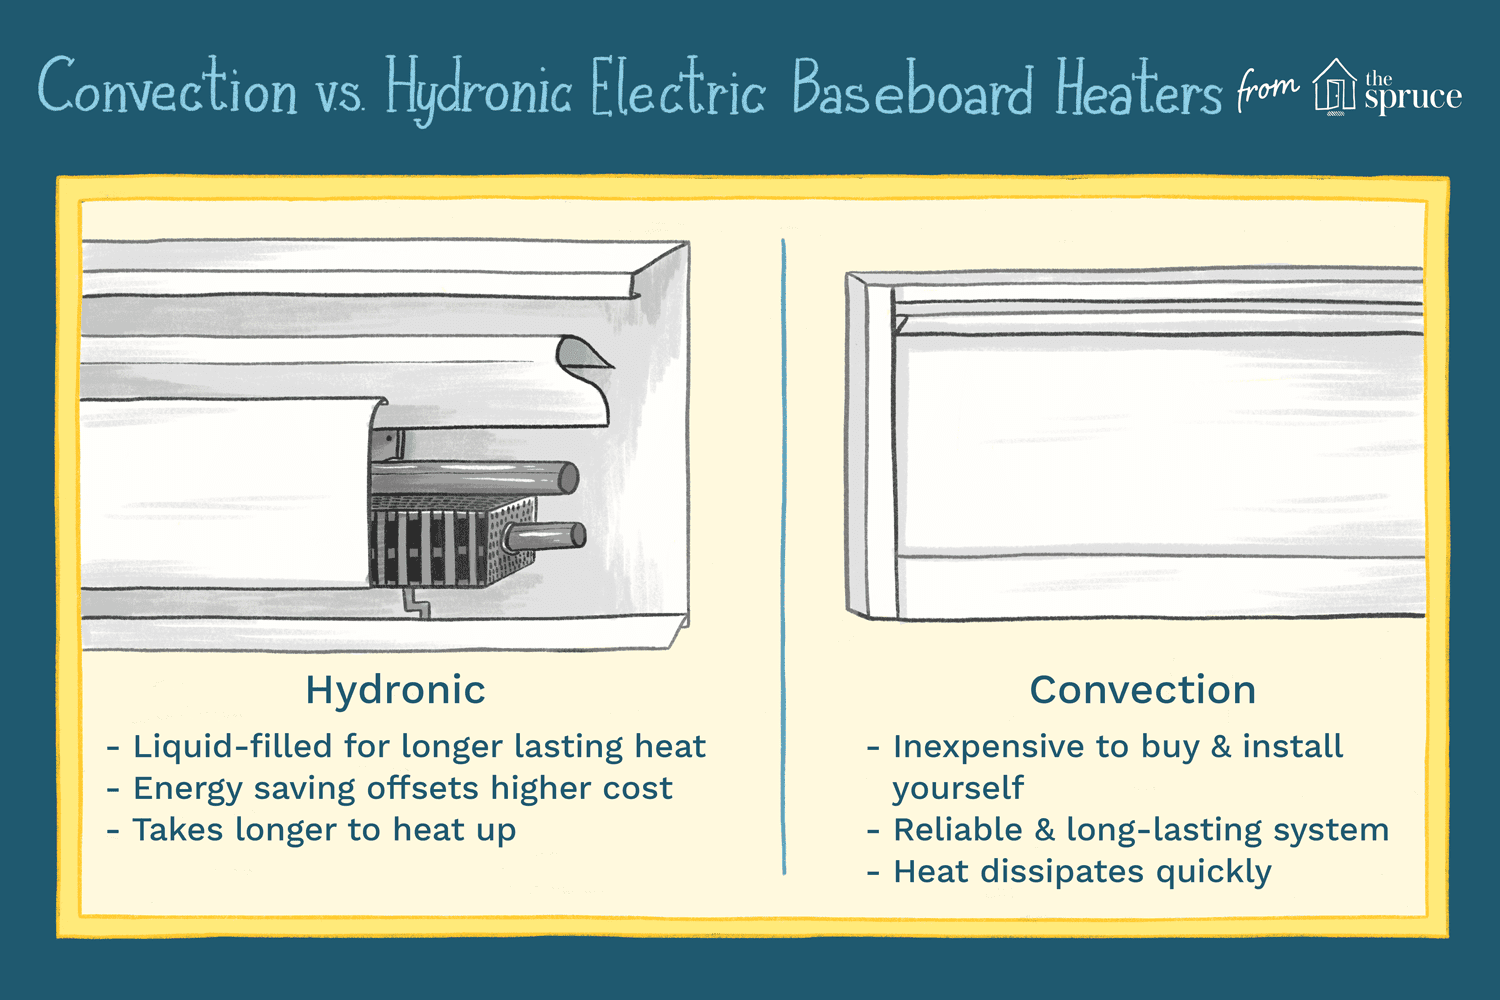 Convection vs. Hydronic Electric Baseboard Heaters on